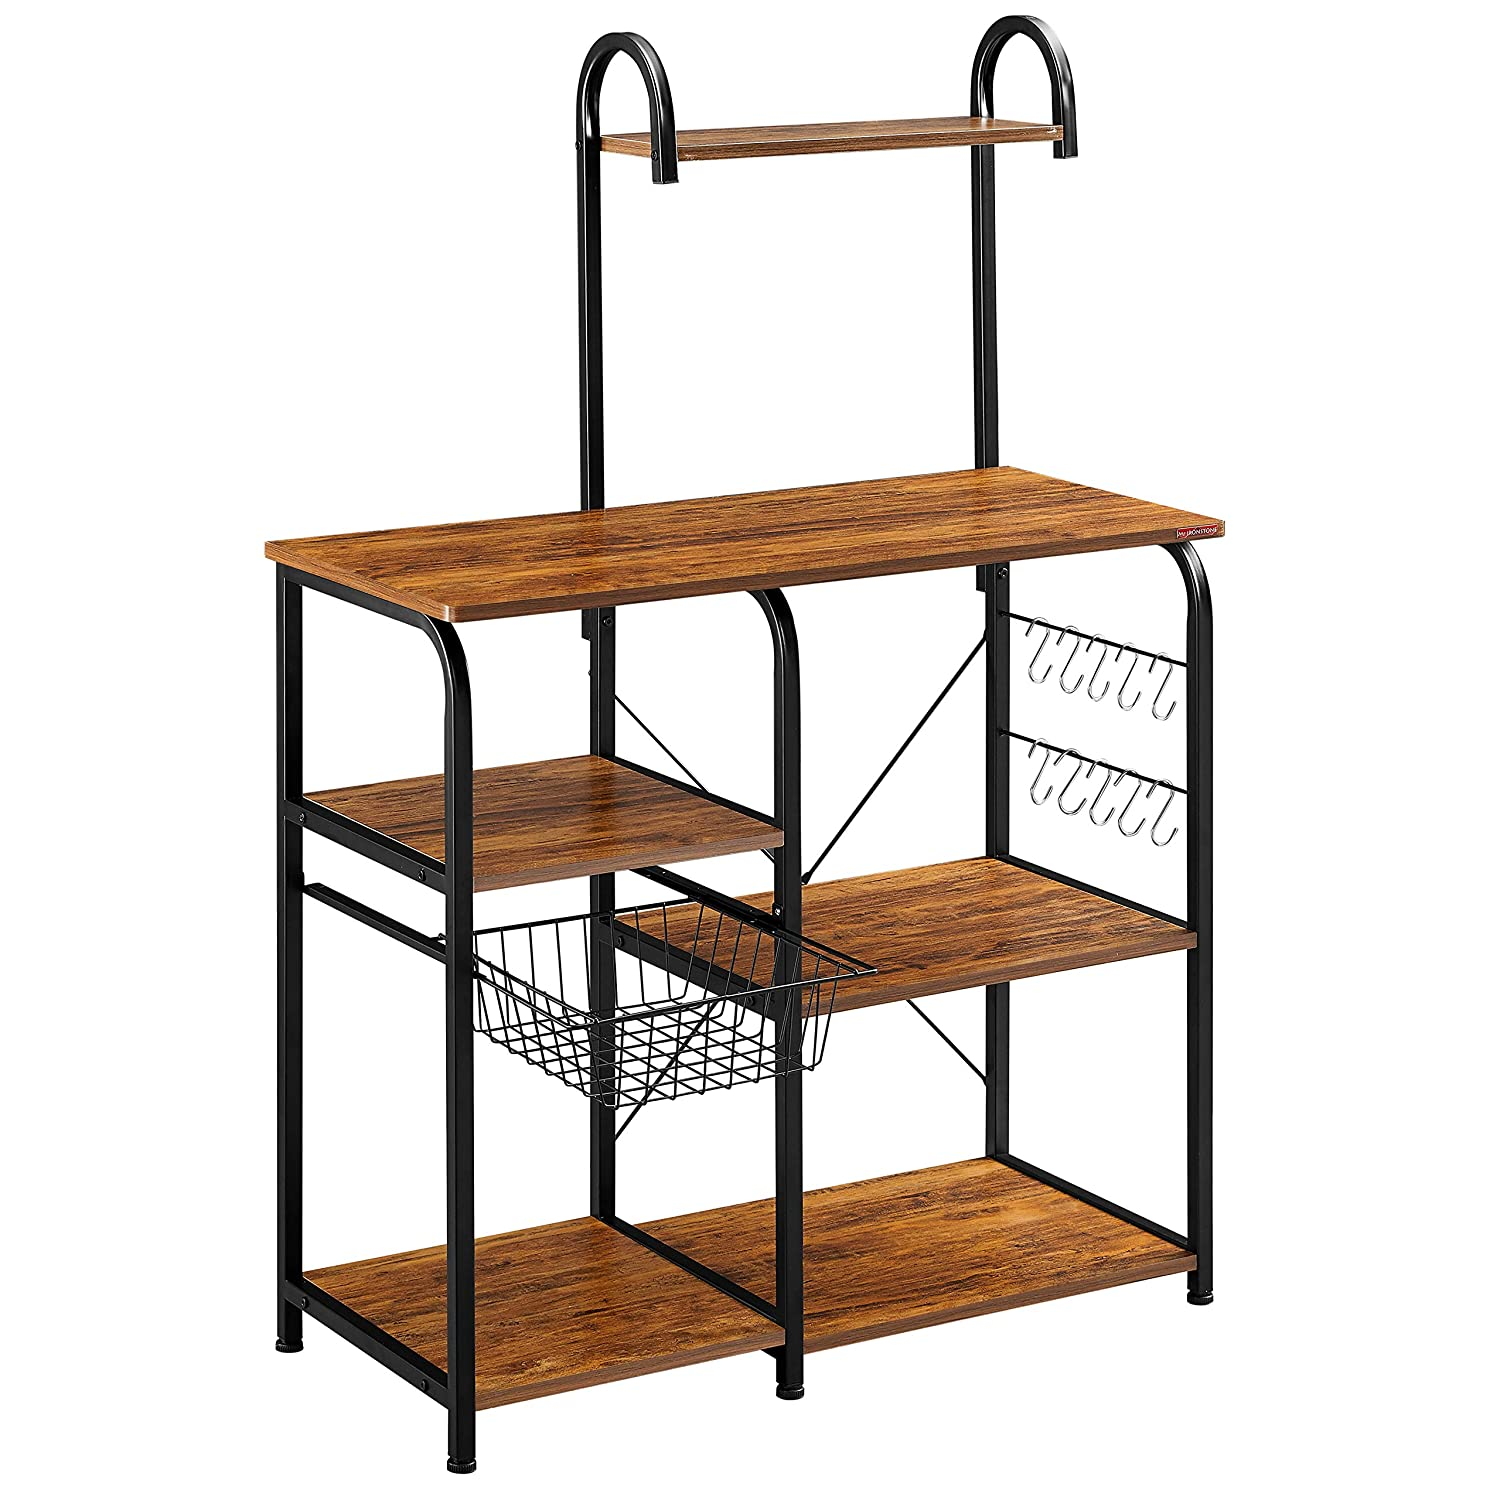 "Mr IRONSTONE Vintage Kitchen Baker's Rack Utility Storage Shelf 35.5"" Microwave Stand 4-Tier+3-Tier Shelf for Spice Rack Organizer Workstation with 10 Hooks"